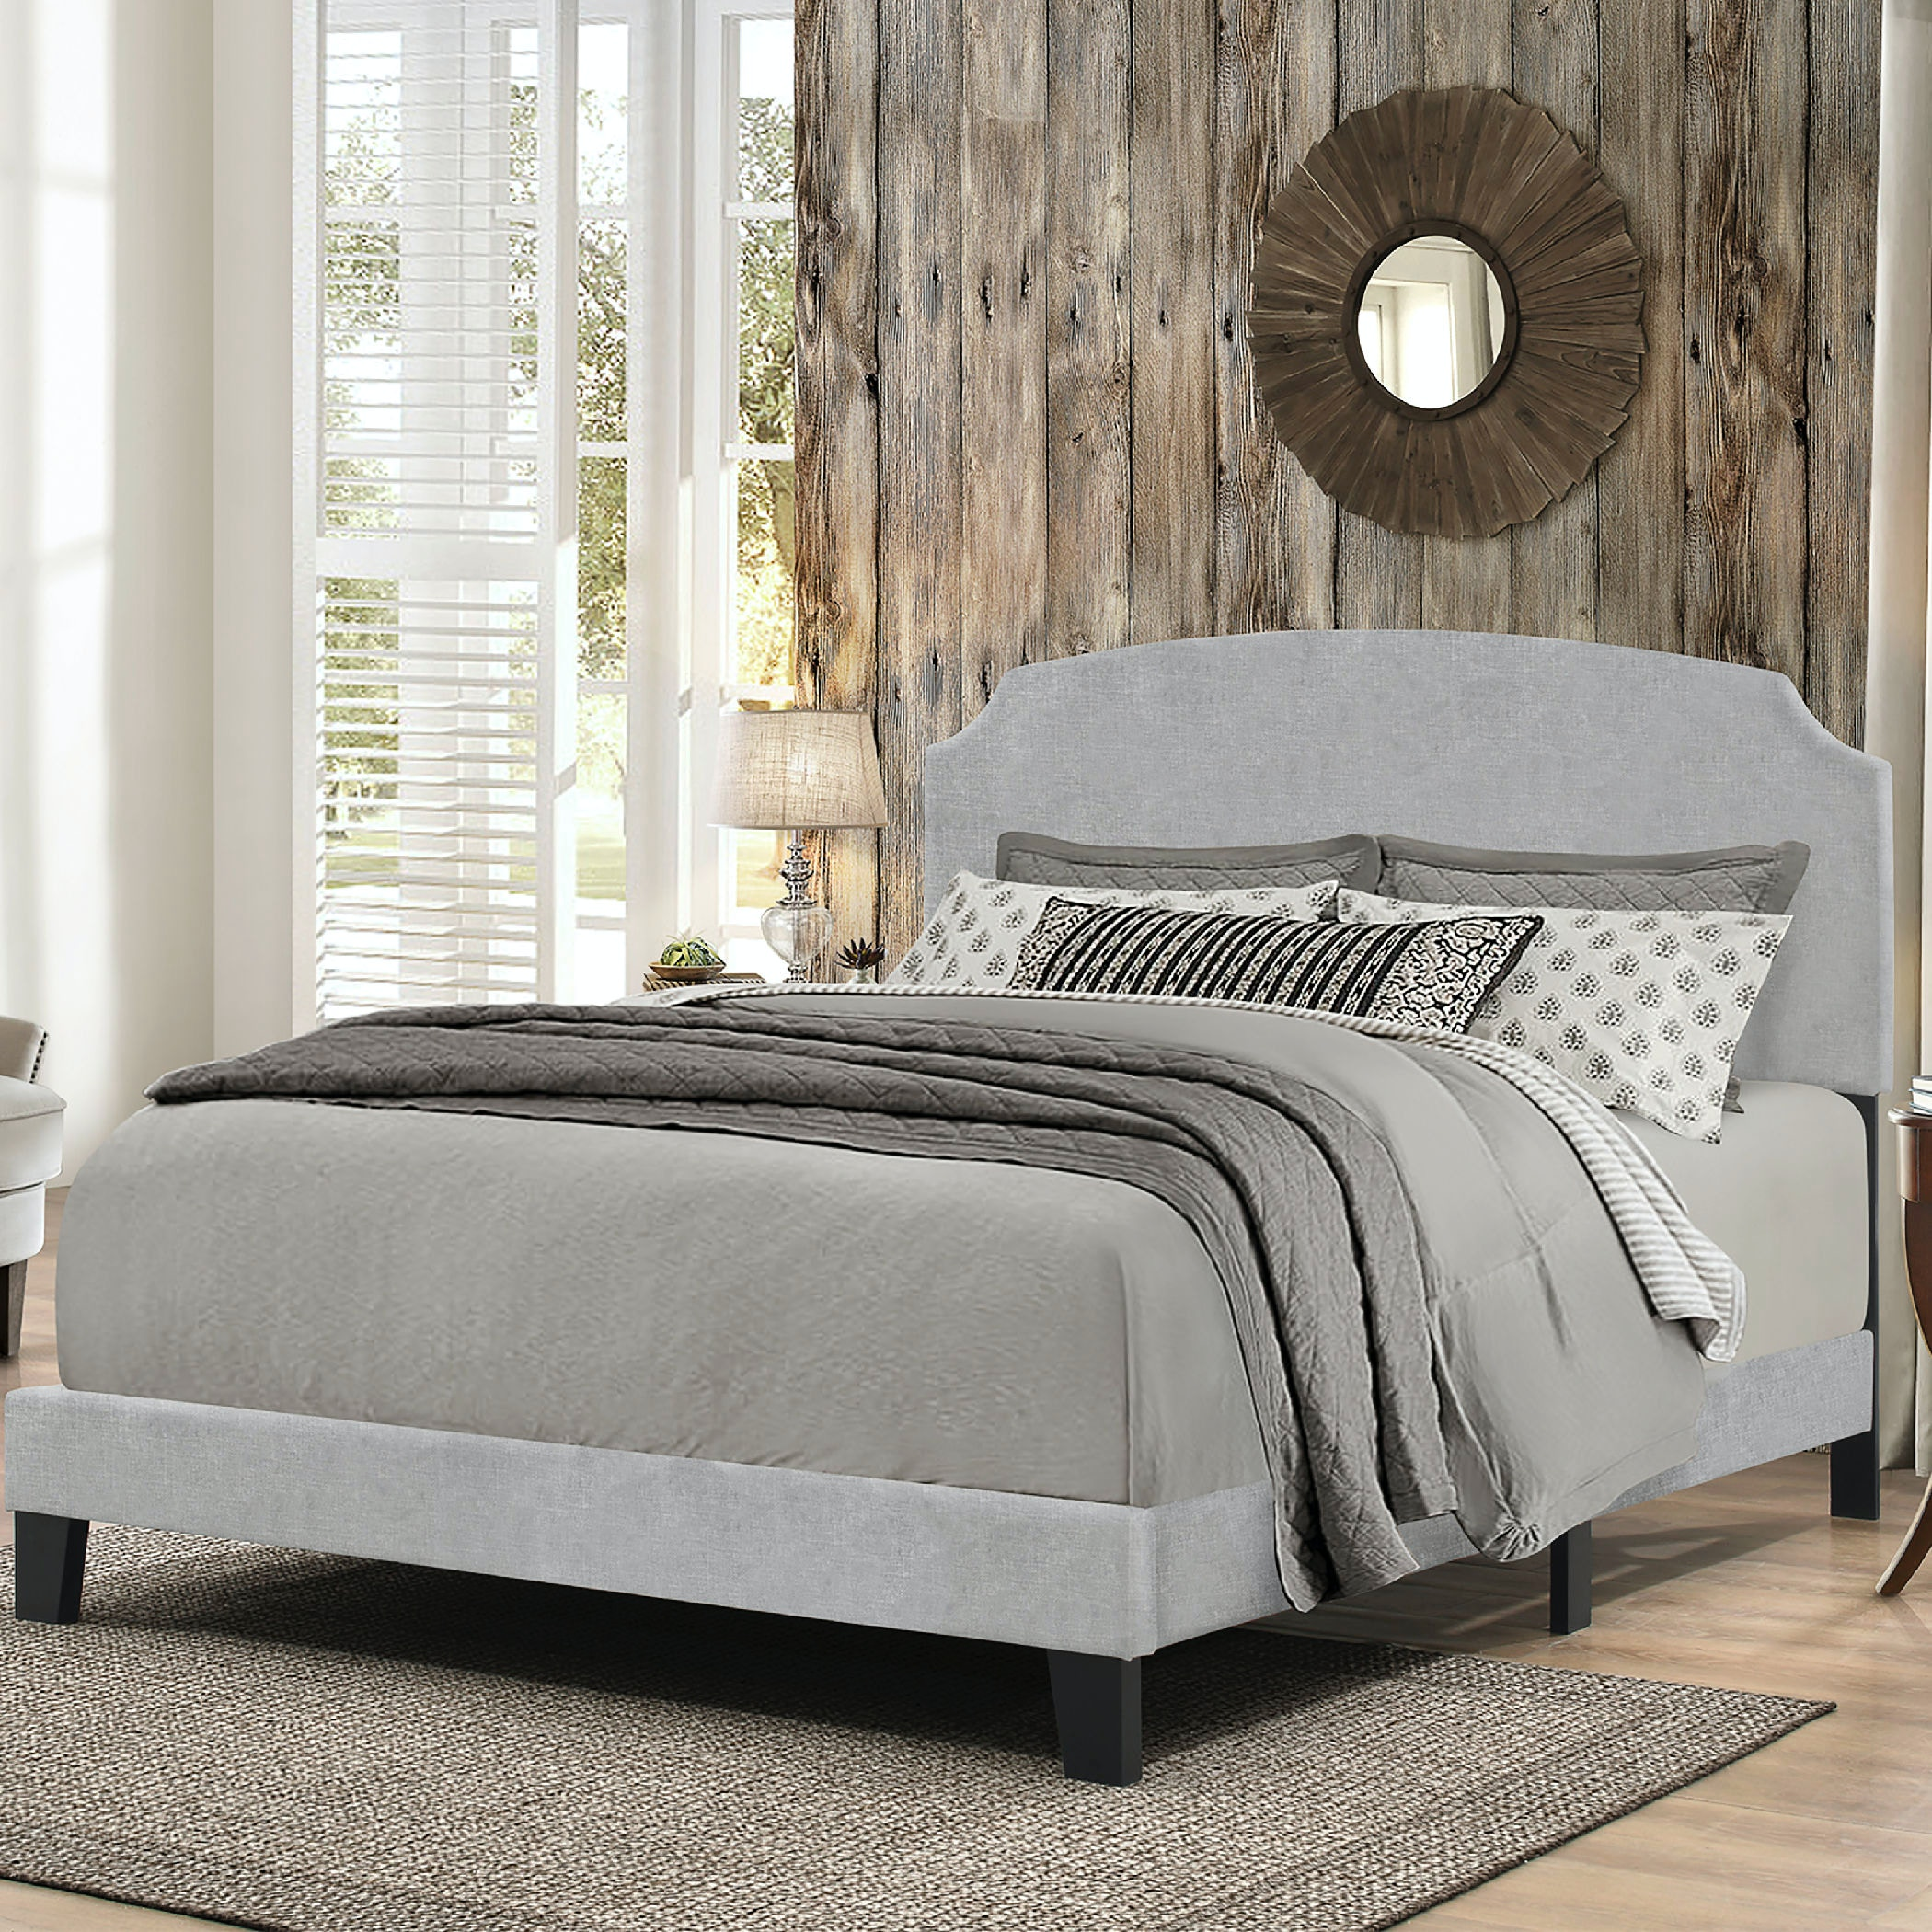 Hillsdale Furniture Bedroom Desi Bed In One   King   Glacier Gray Fabric